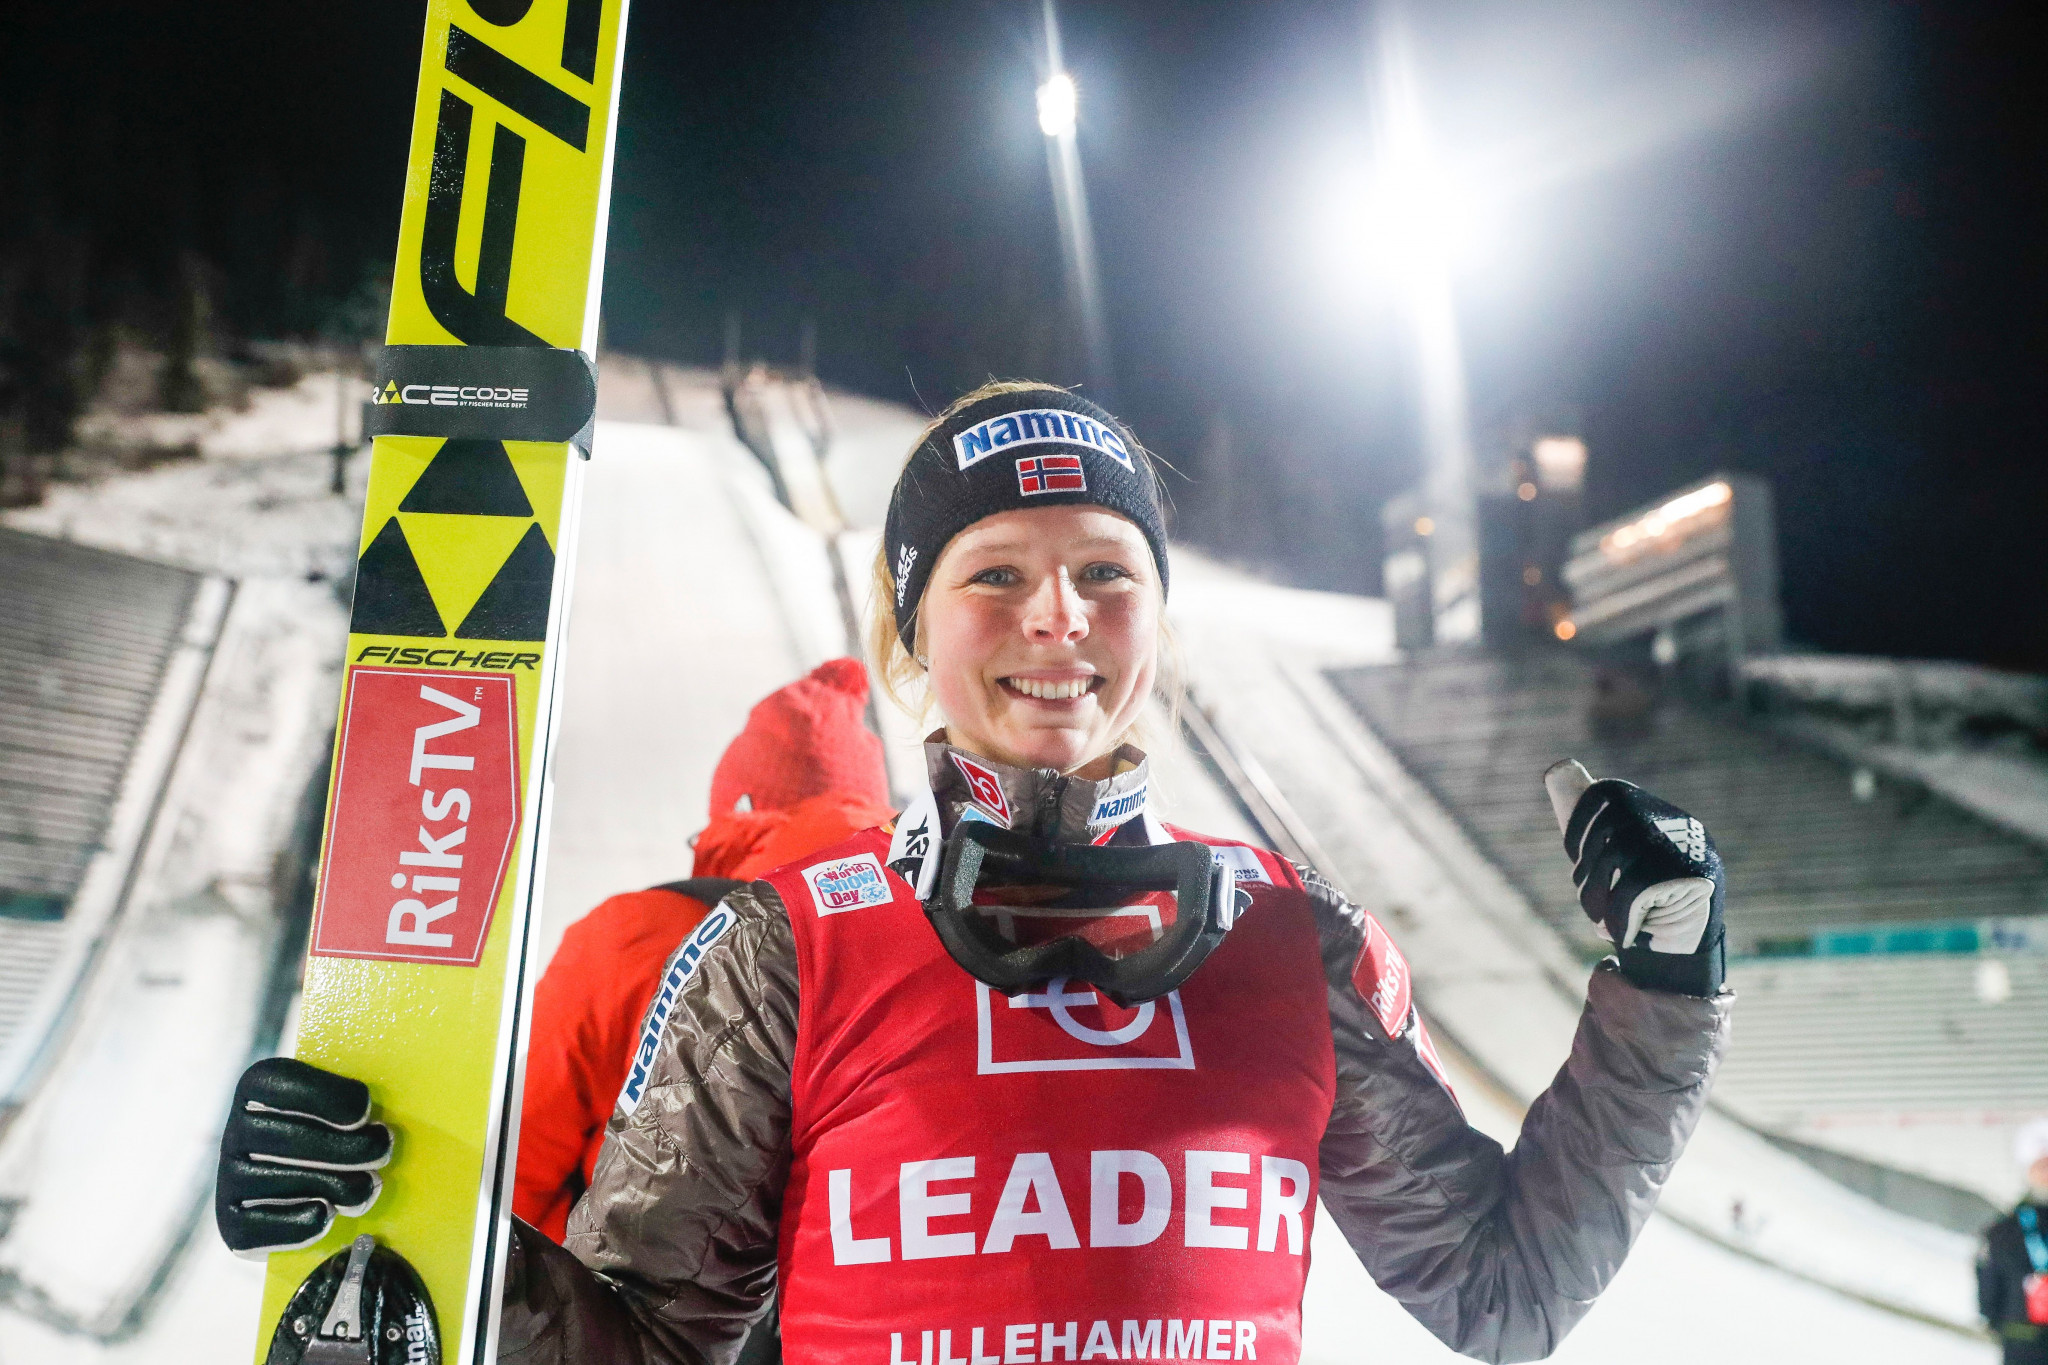 Home win for Lundby as FIS Women's Ski Jumping World Cup season begins